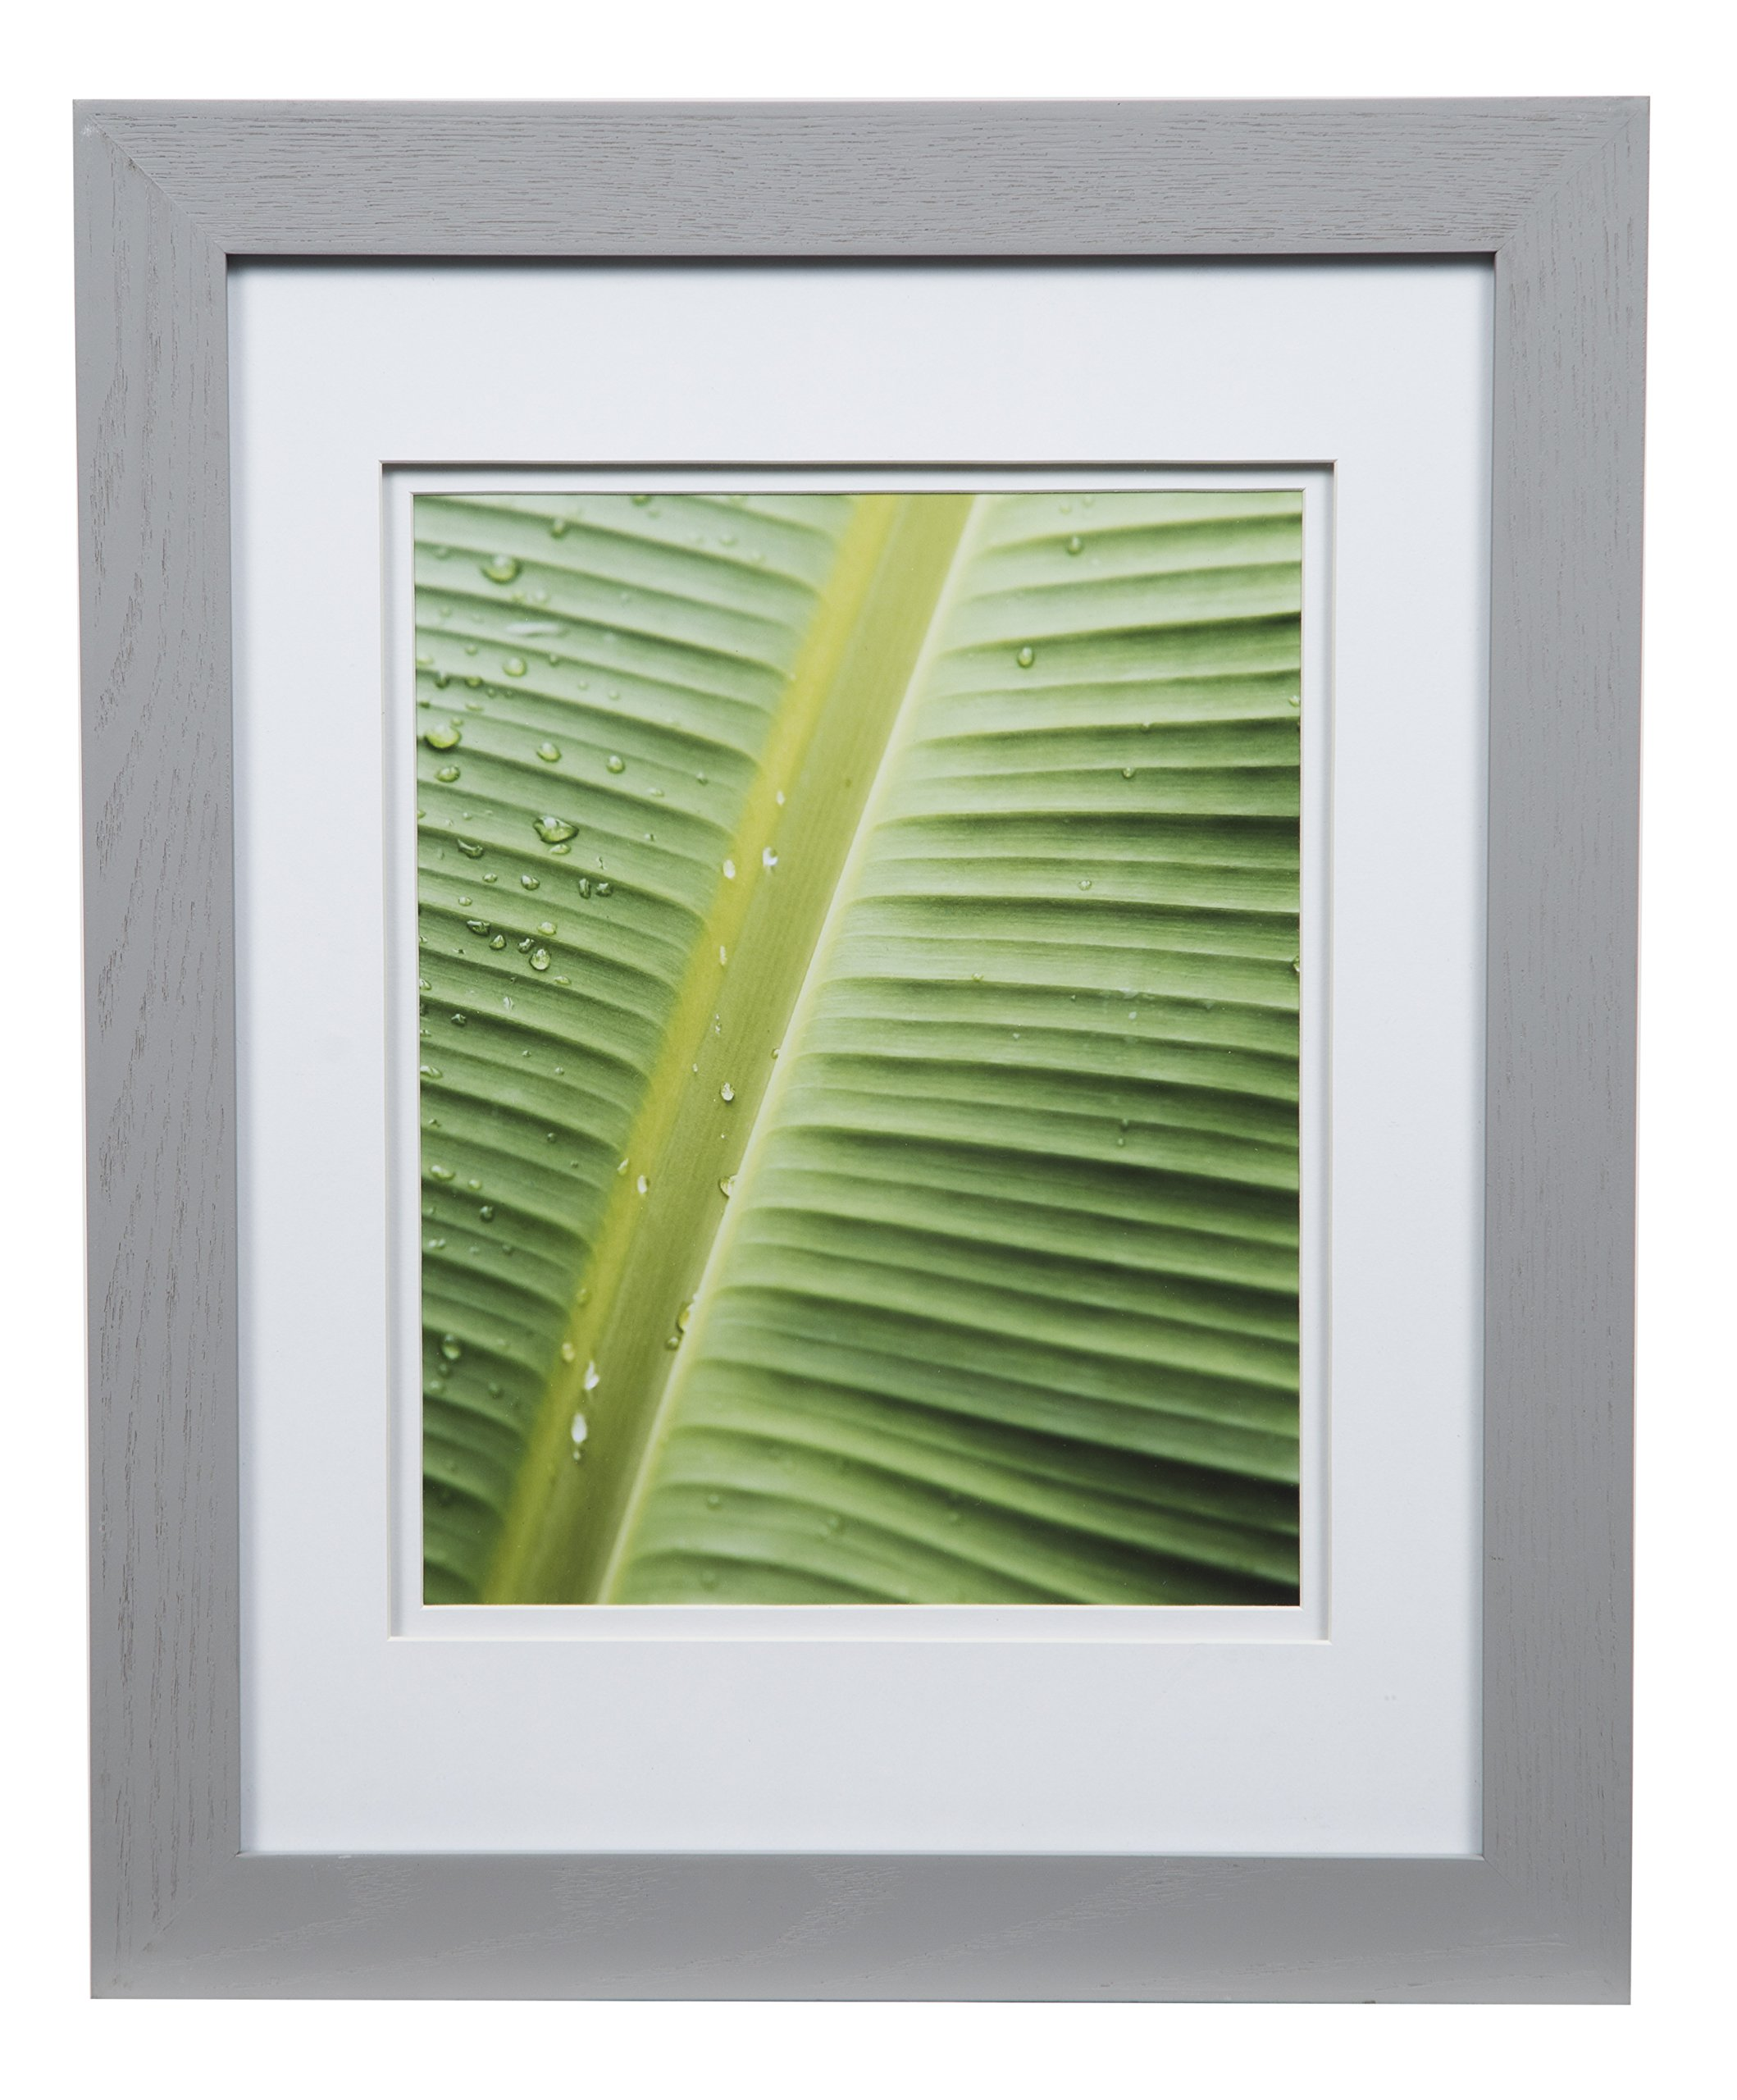 Cheap Double 8x10 Wall Frame Find Double 8x10 Wall Frame Deals On